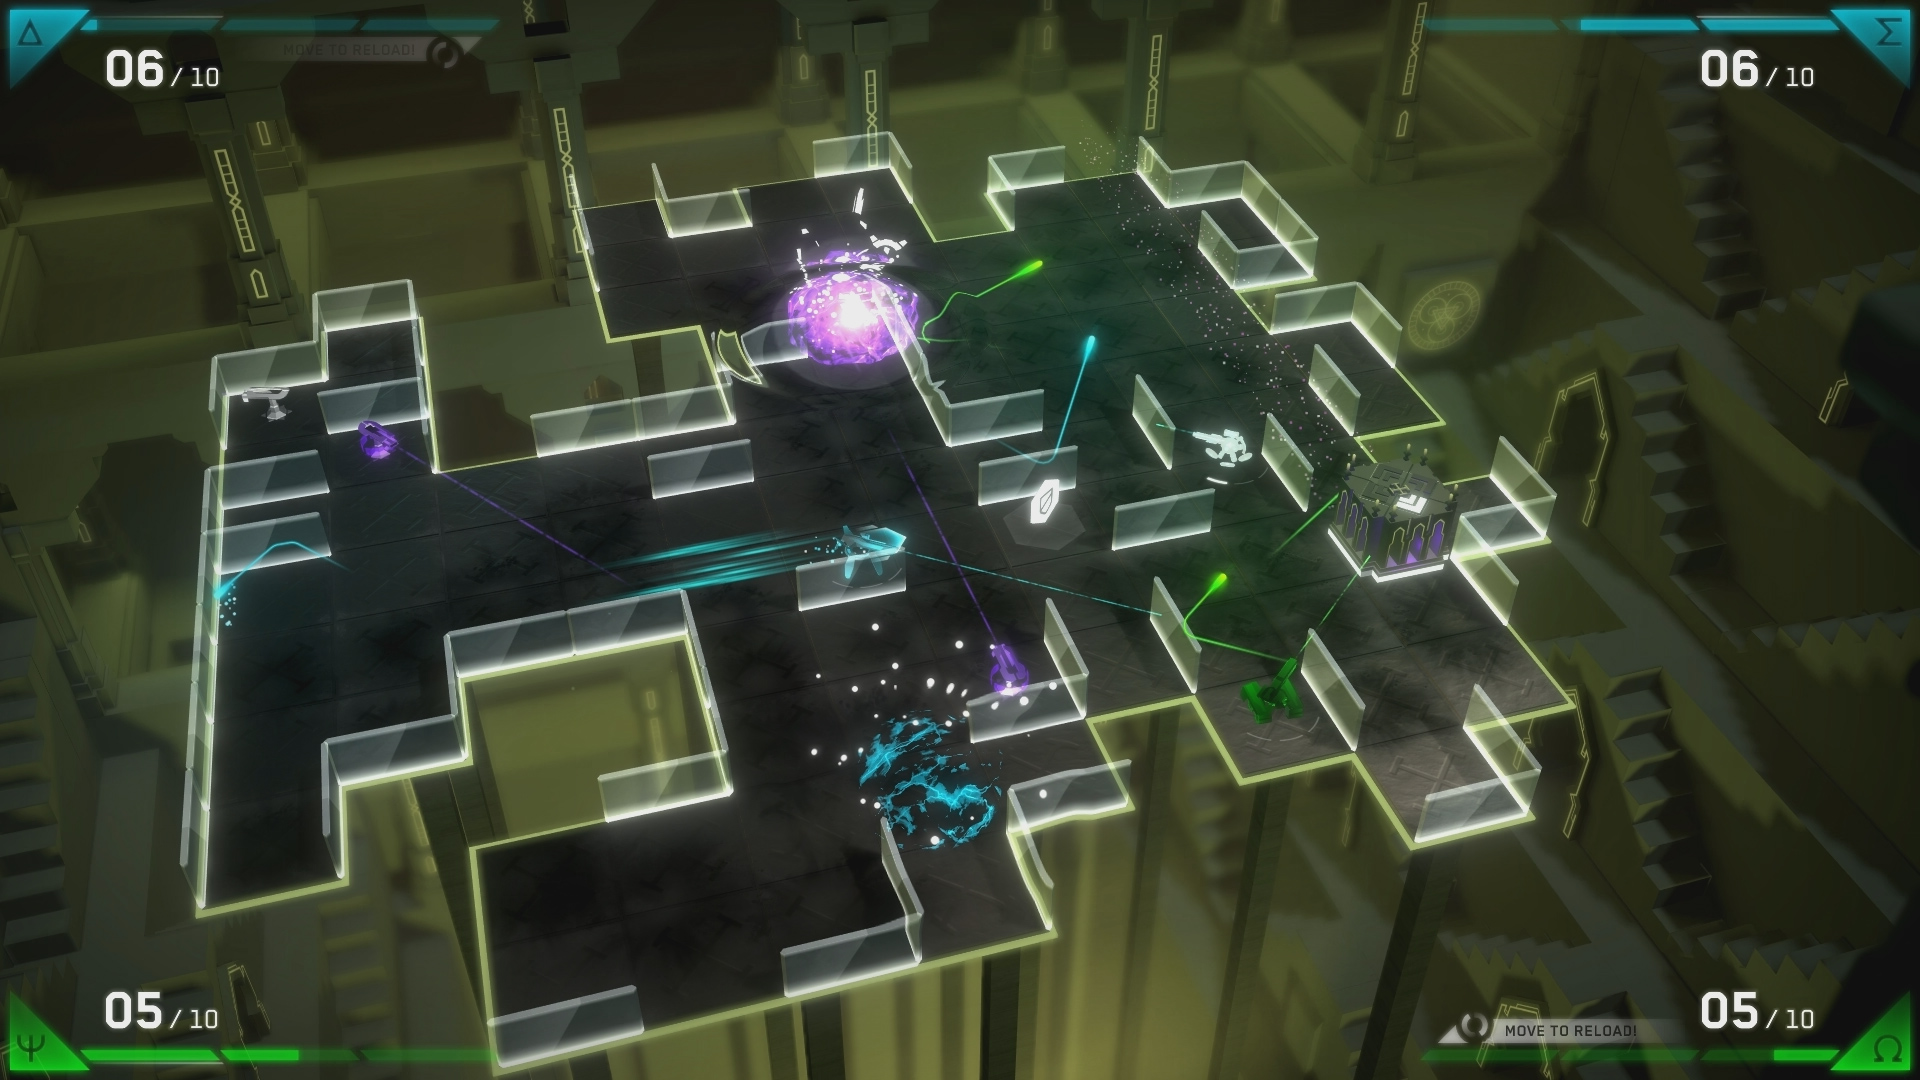 Futuristic brawler Varion launches next month